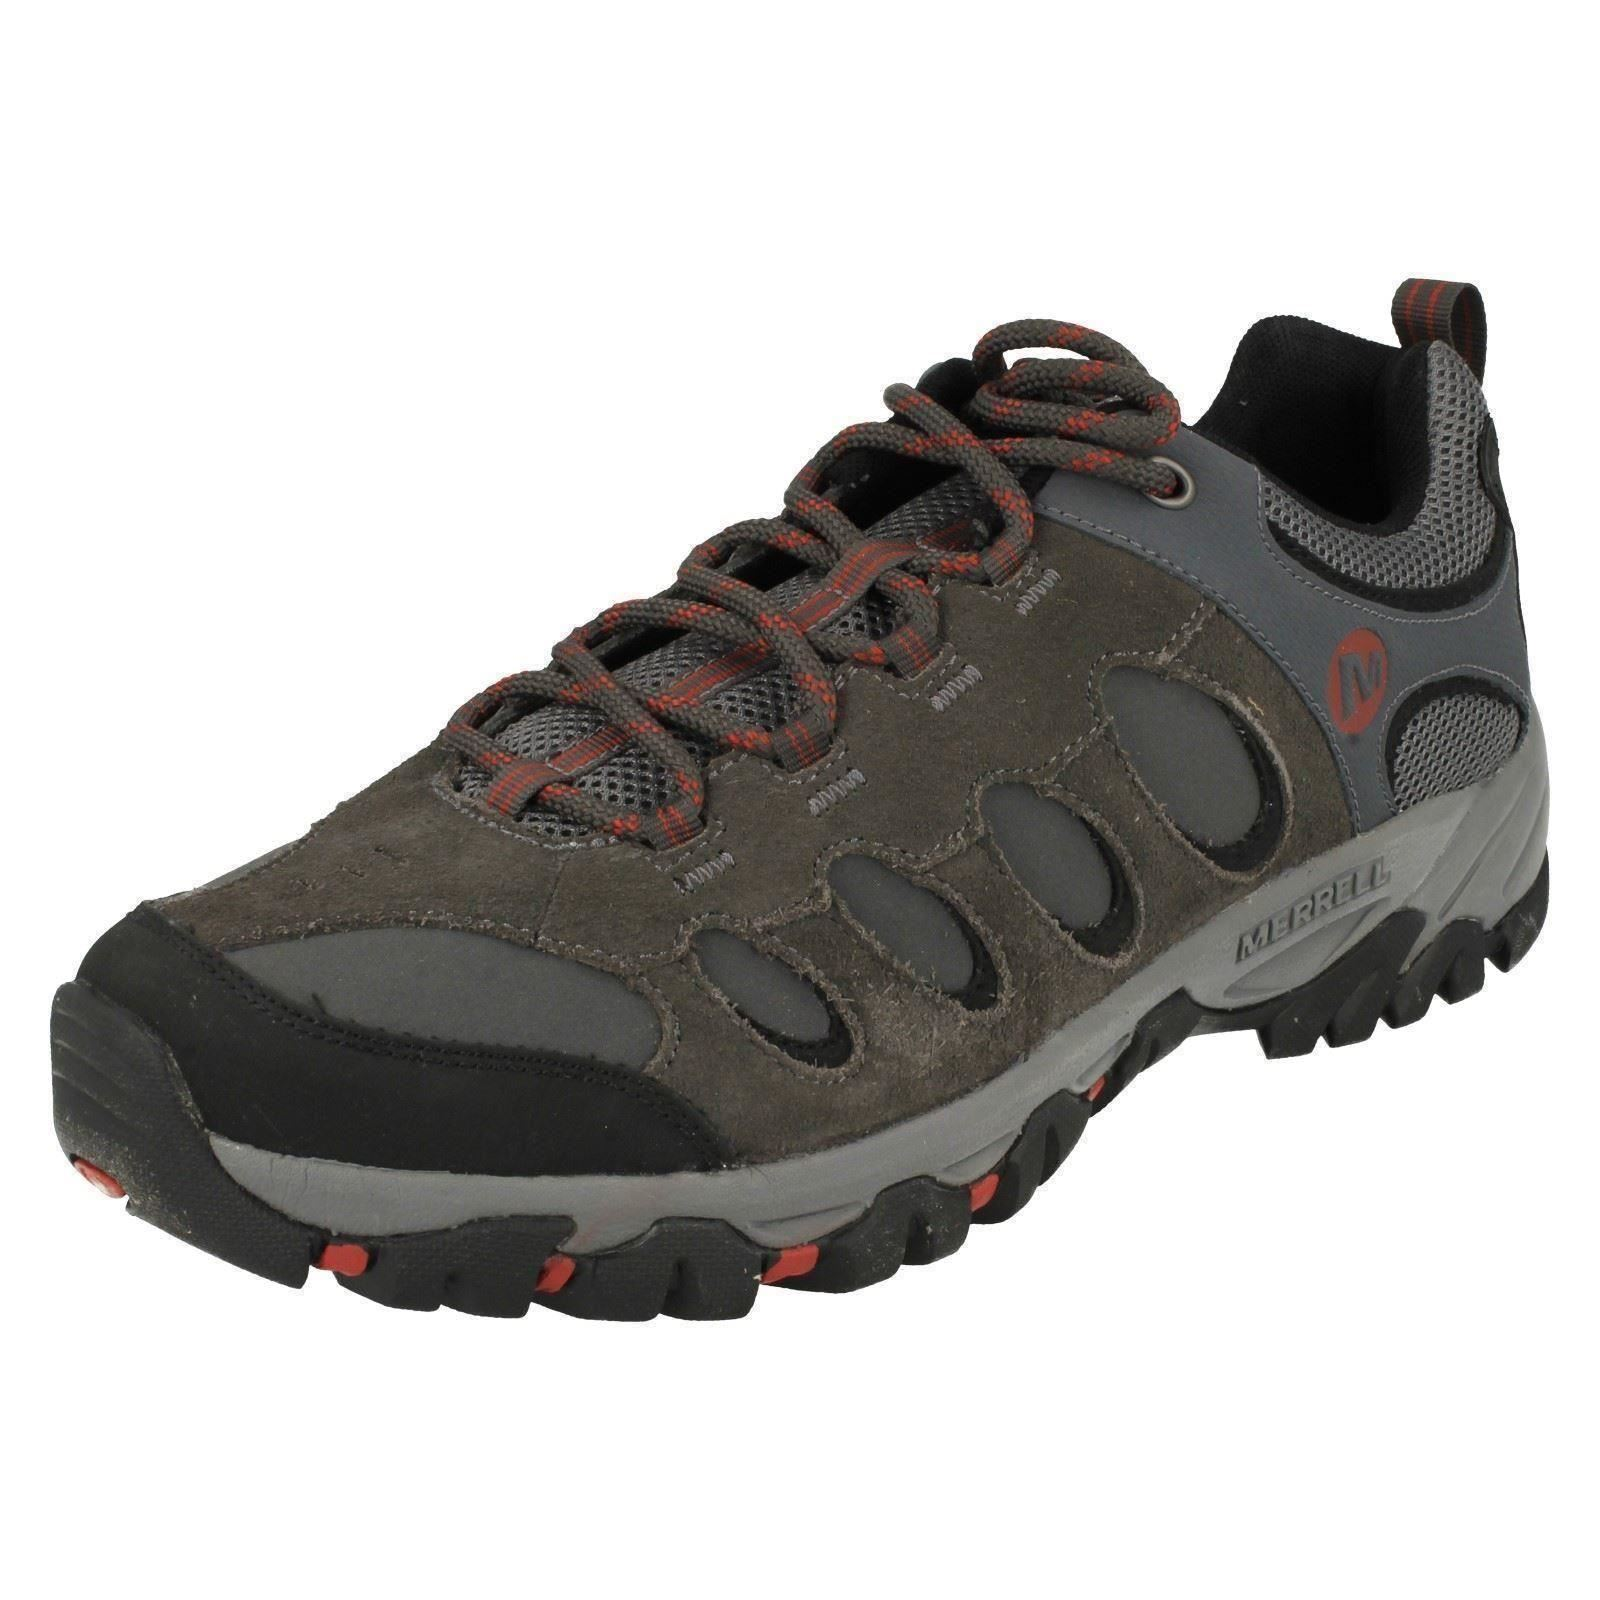 Mens RIDGEPASS BOLT Granite rot ochre Leather Lace Up trainers By Merrell